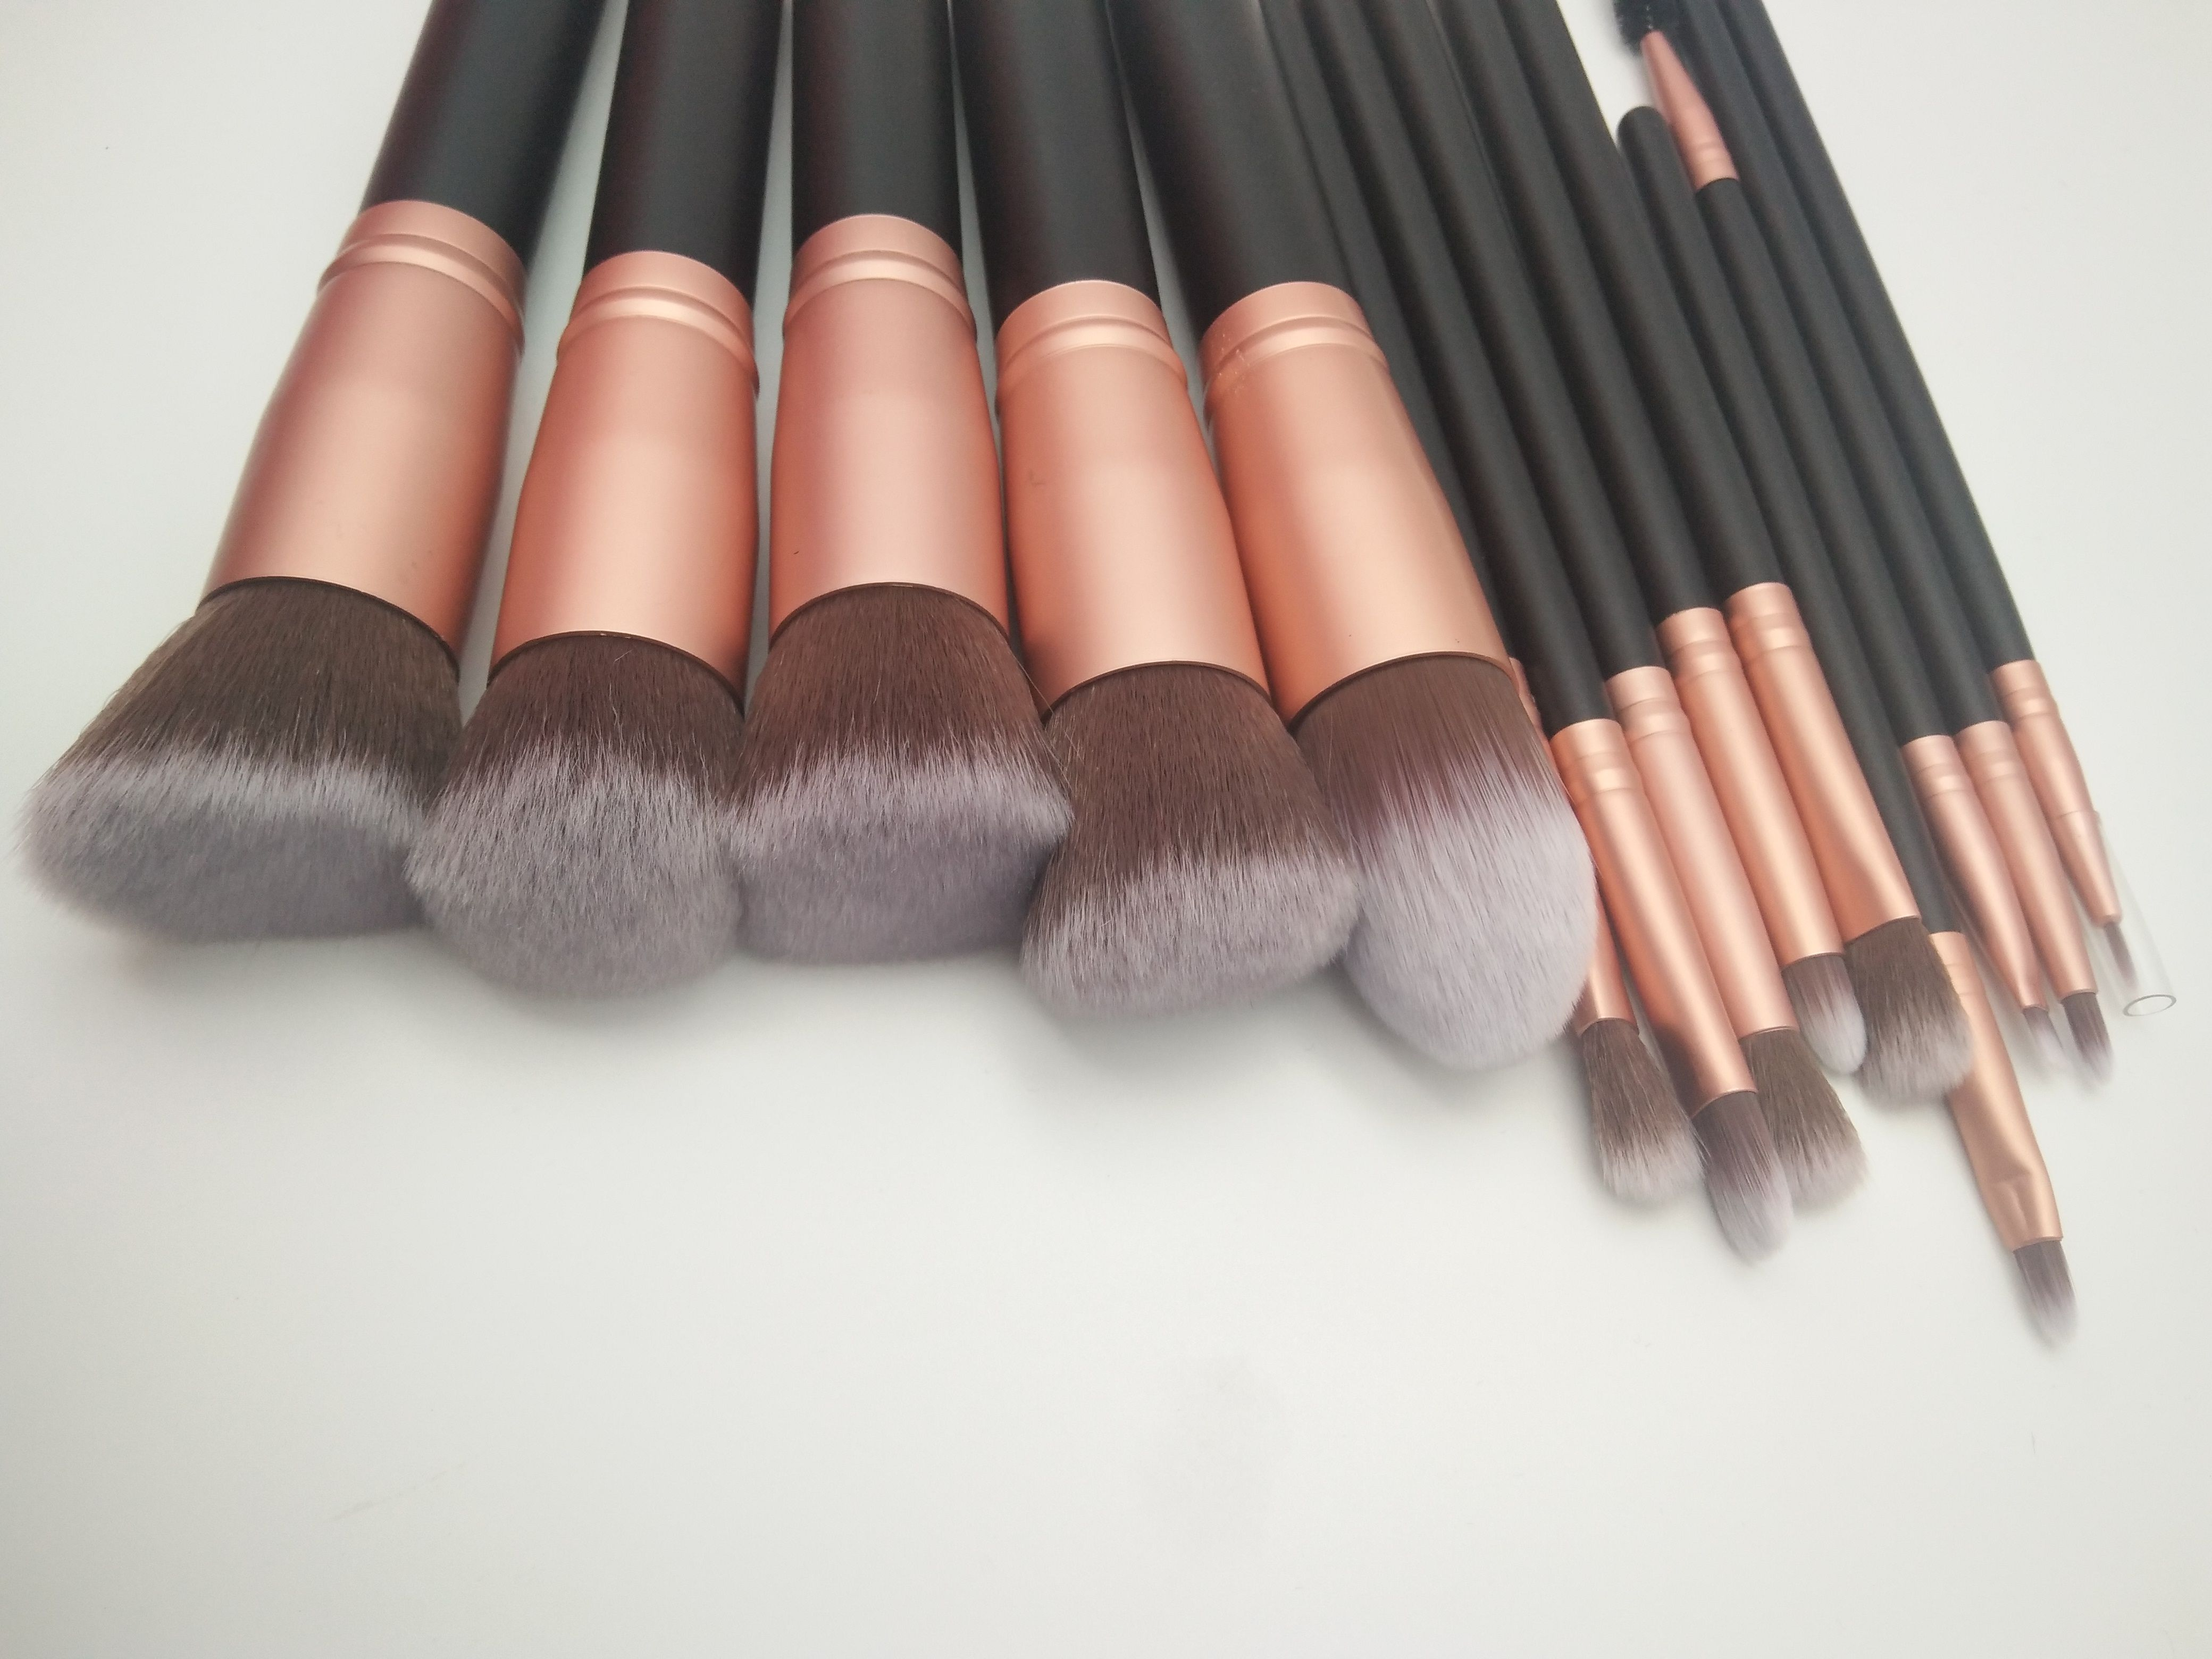 beauty_makeupbrushes Available professional makeup brush